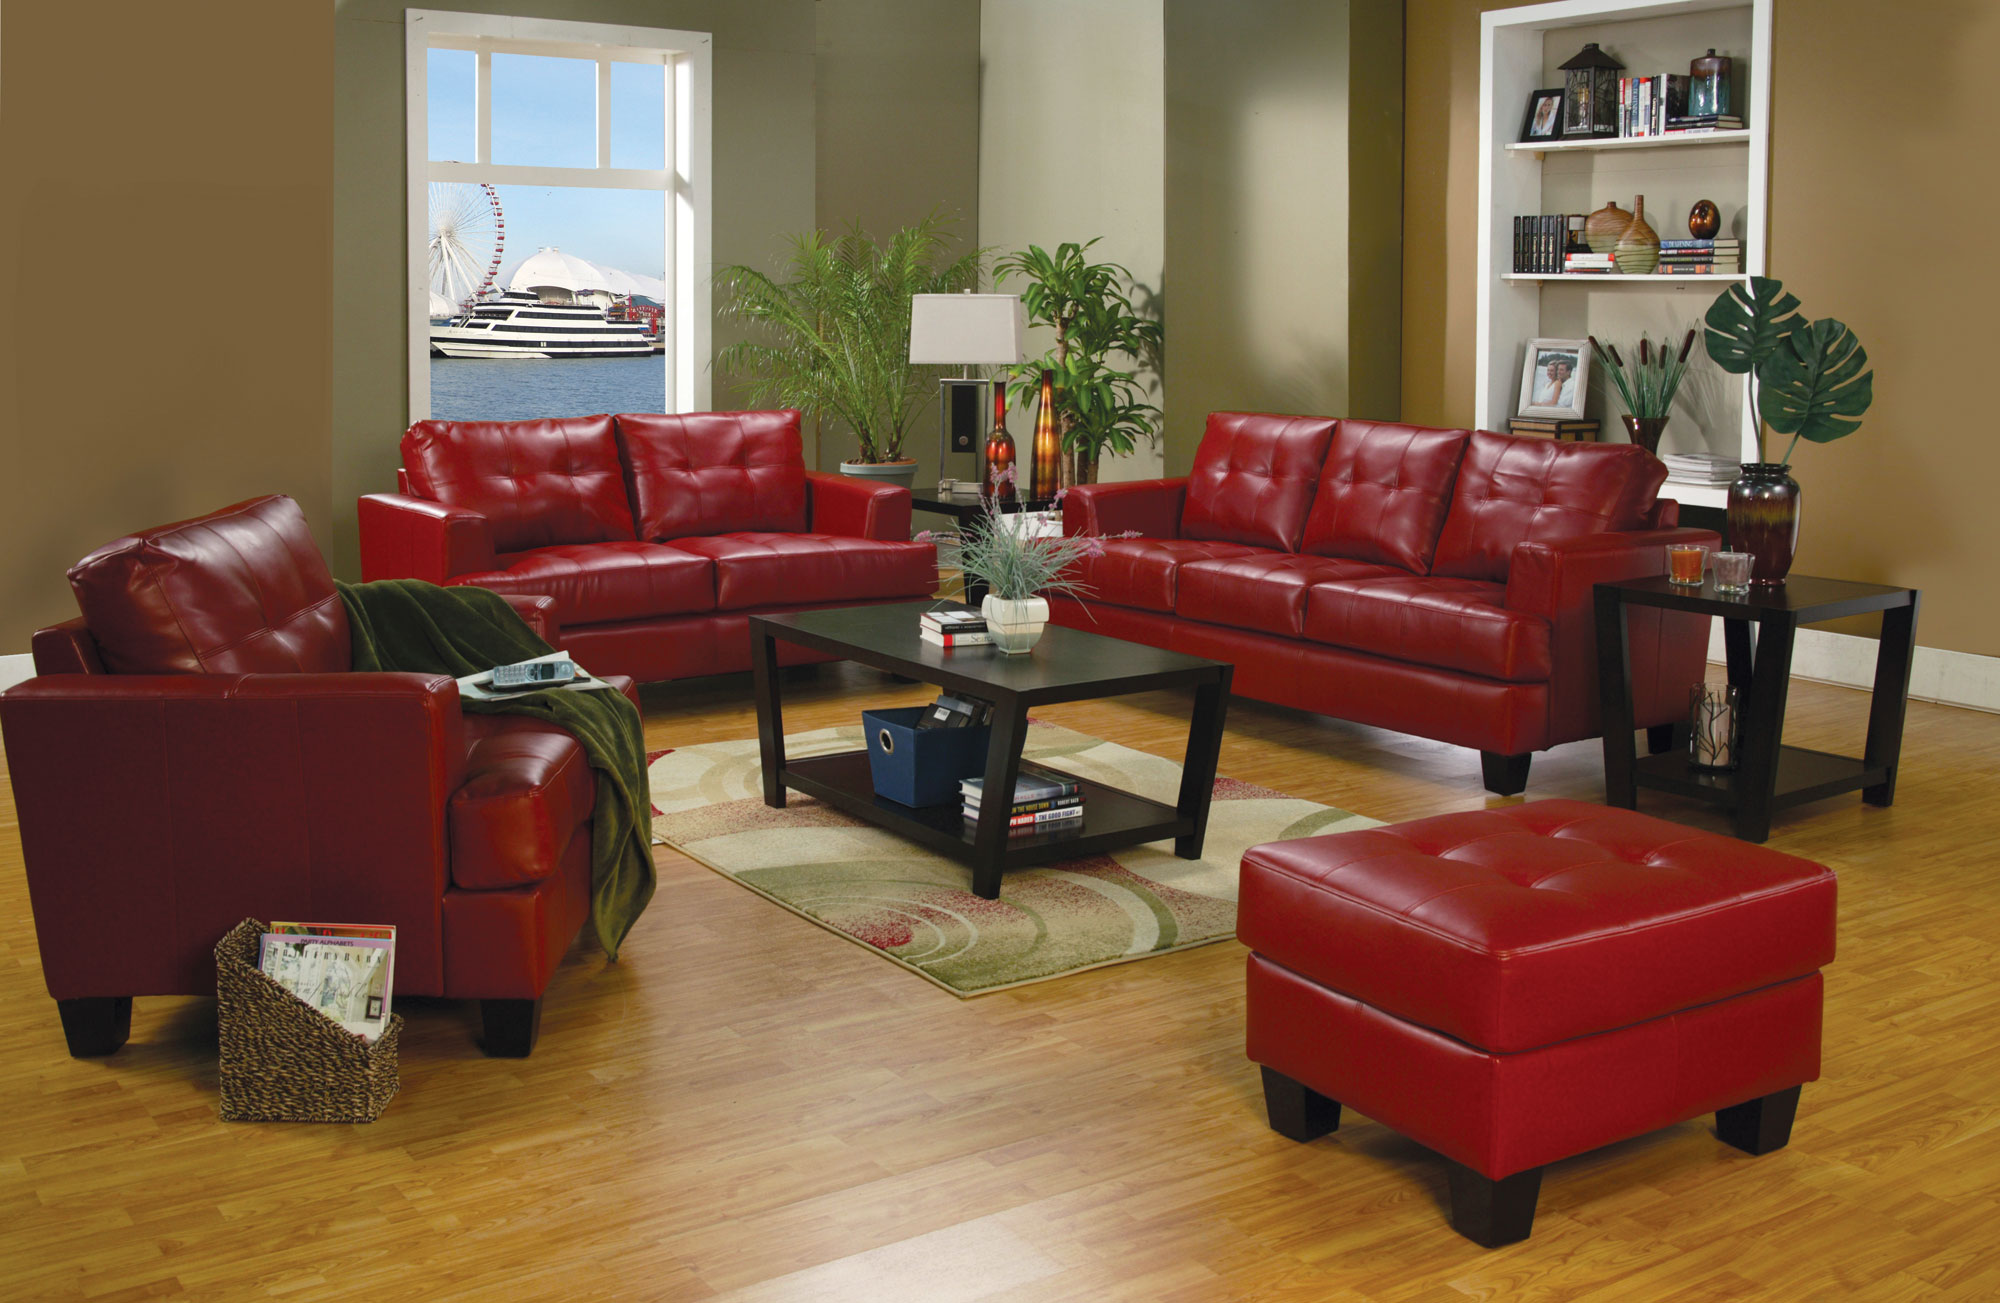 Unique Red Sofa With Ottoman 62 With Additional Sofa Table Ideas with Red Sofa With Ottoman